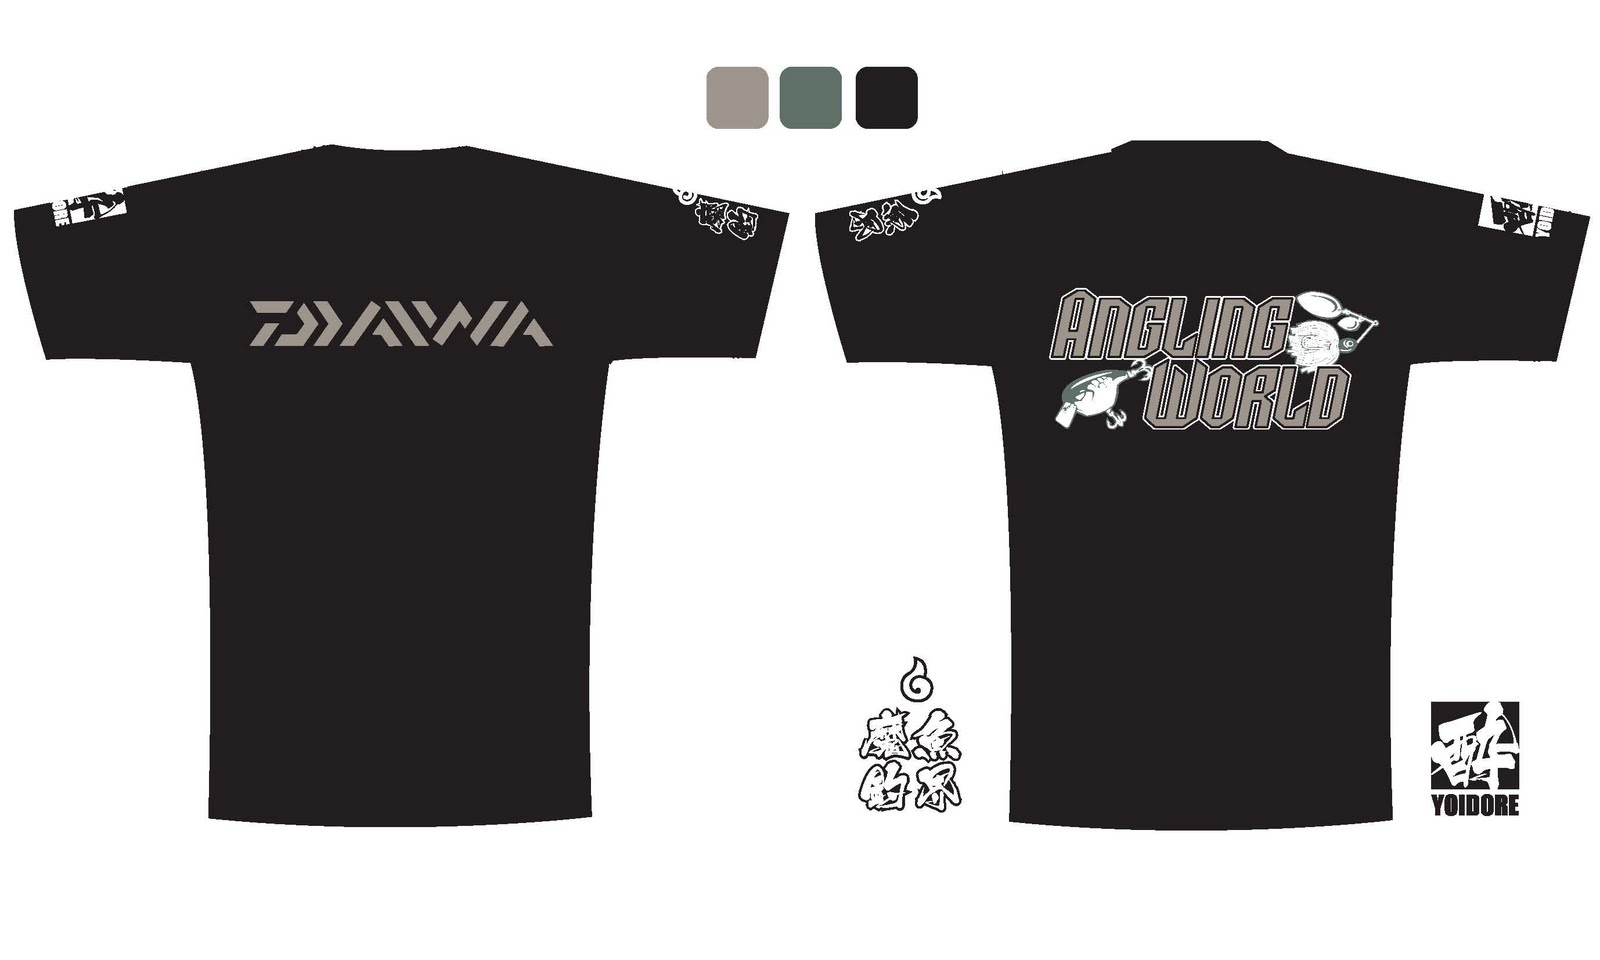 Shirt design and colour - Sorry I Know It S A Bit Late Co Z I Was Very Busy In The Early Of The Year A Black Colour Based T Shirt With 2 Colours Print